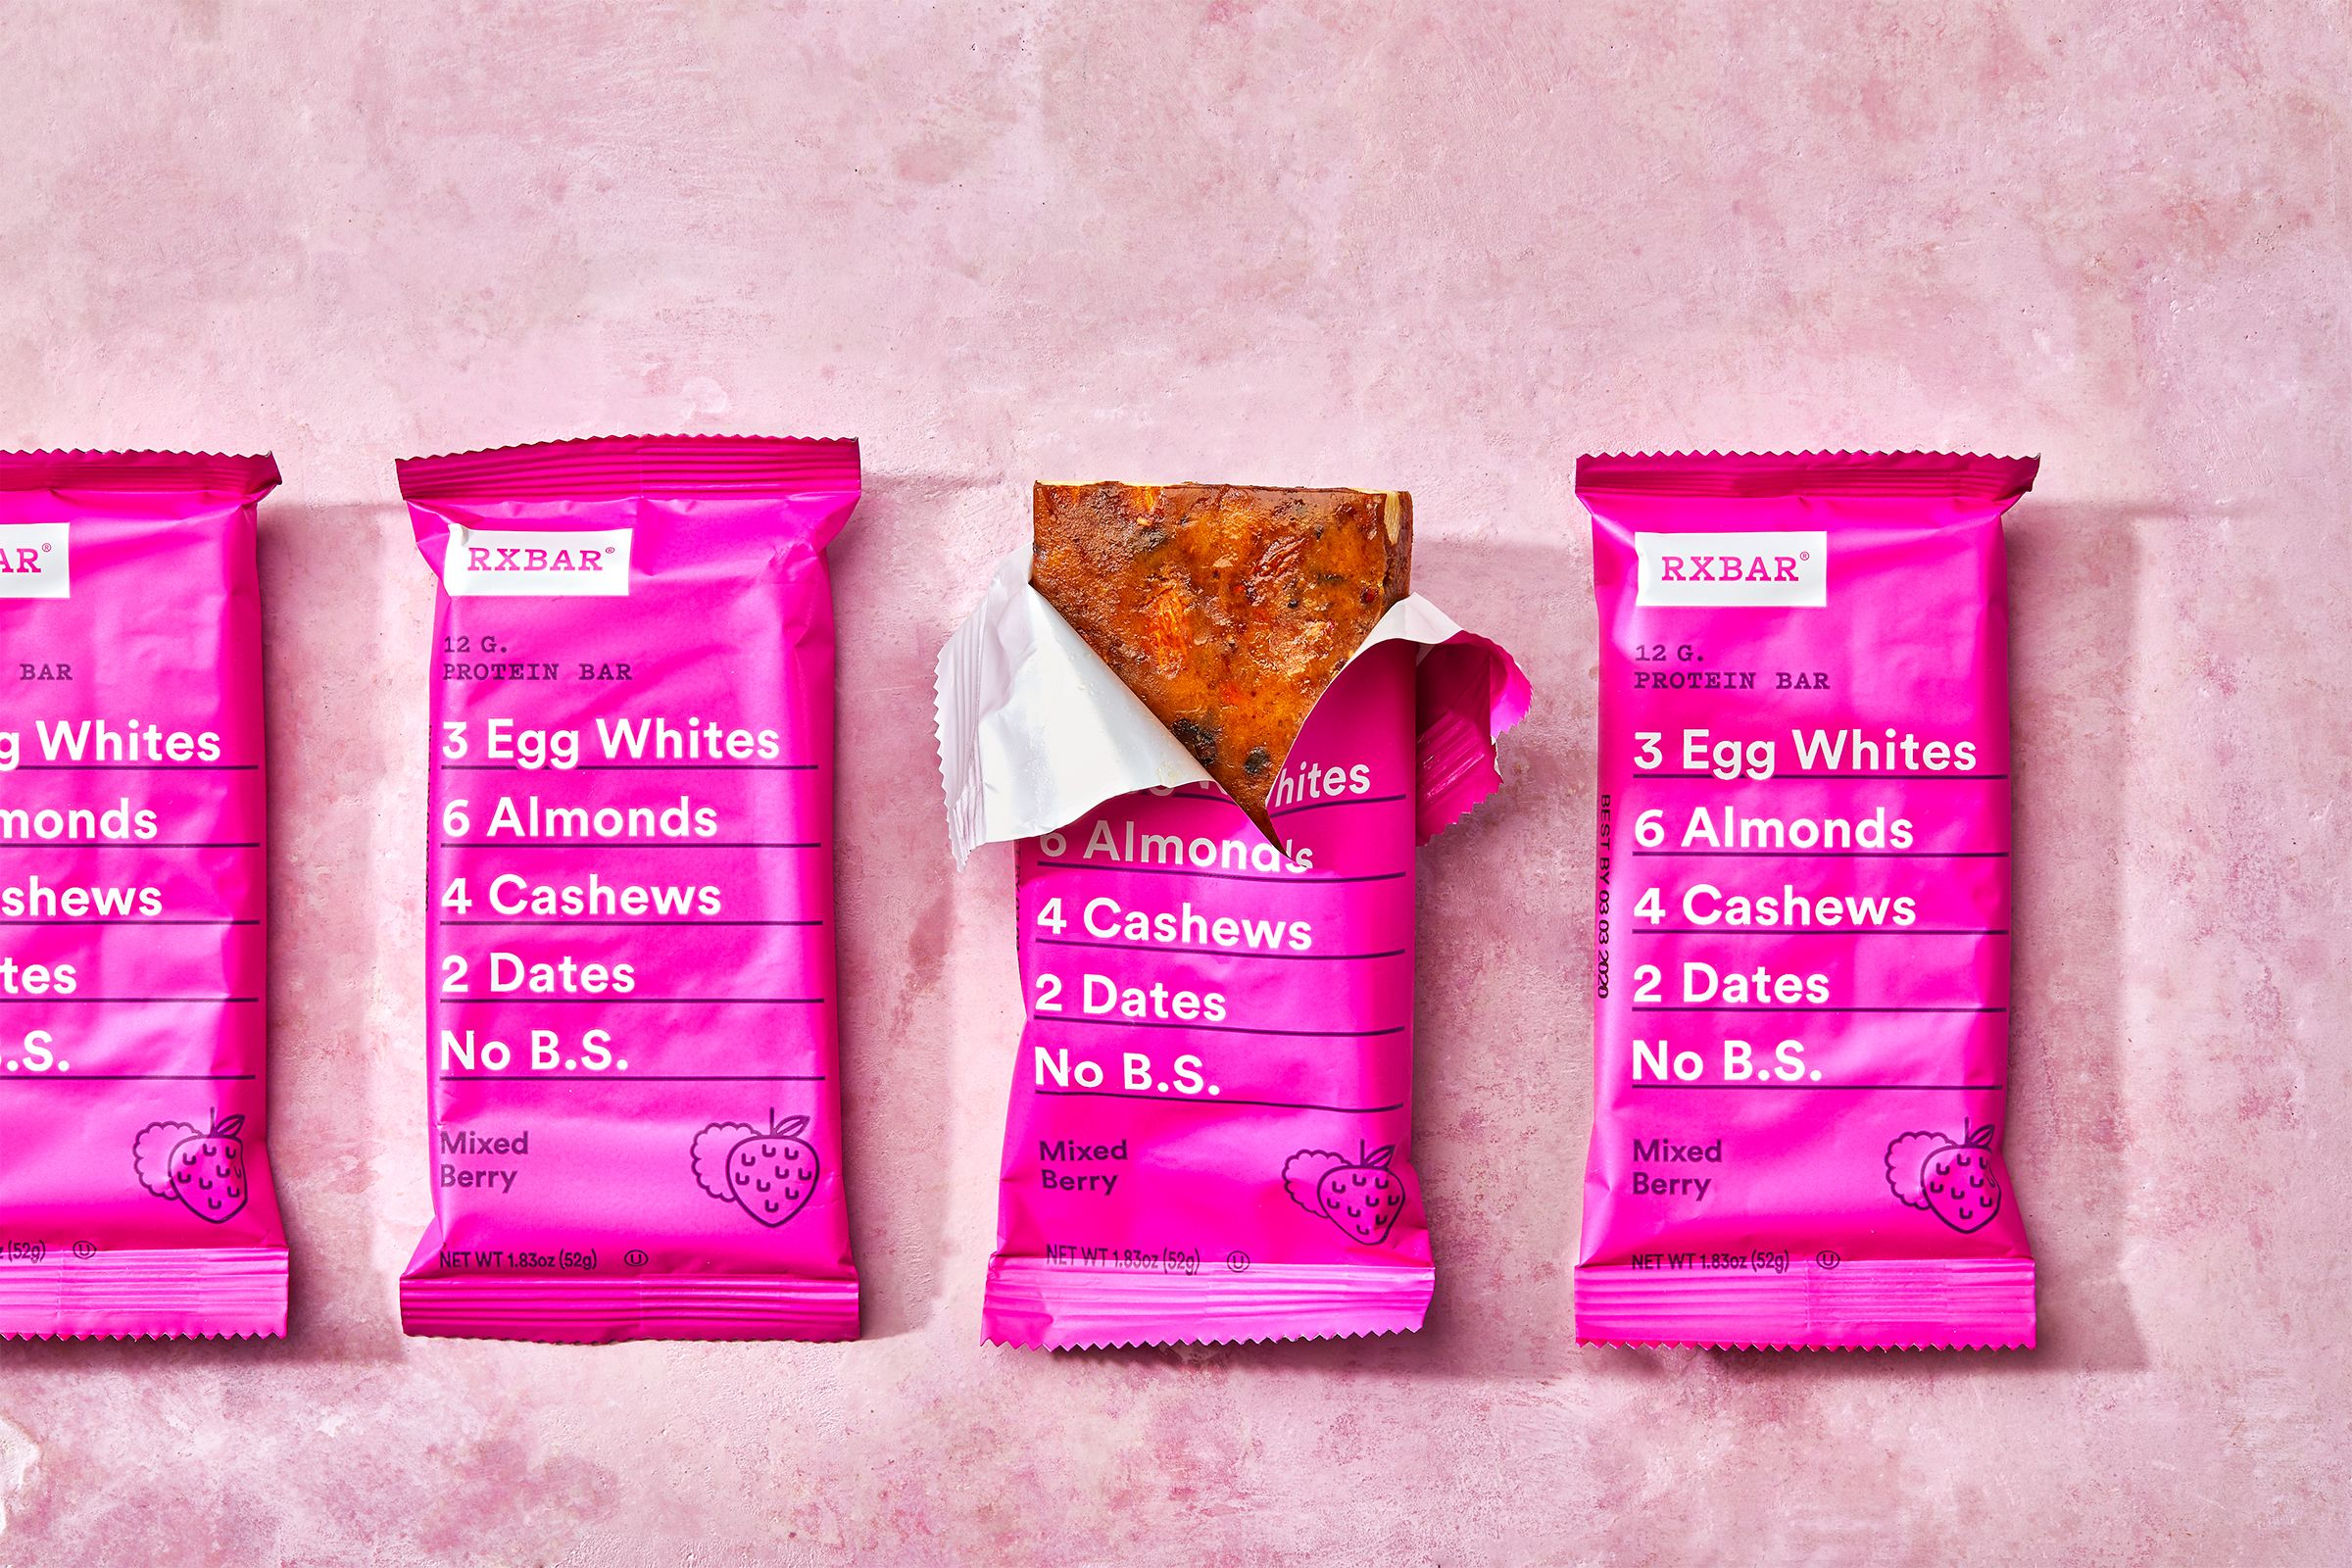 25 Super High-Protein Snacks To Keep On Hand When Hunger Strikes